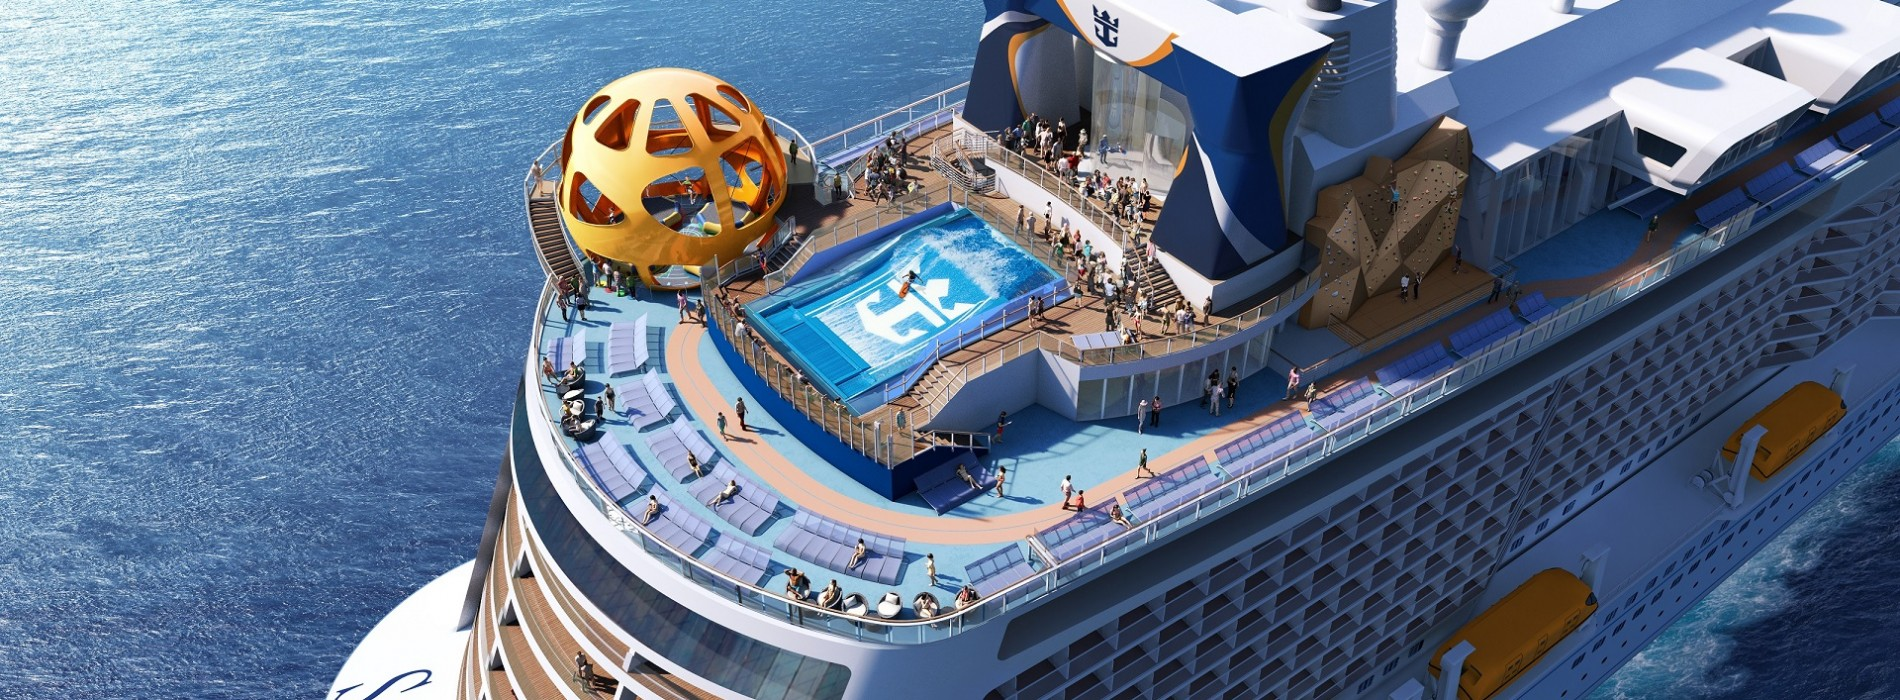 TIRUN announces the arrival of Spectrum of the Seas in the Asia region in 2019